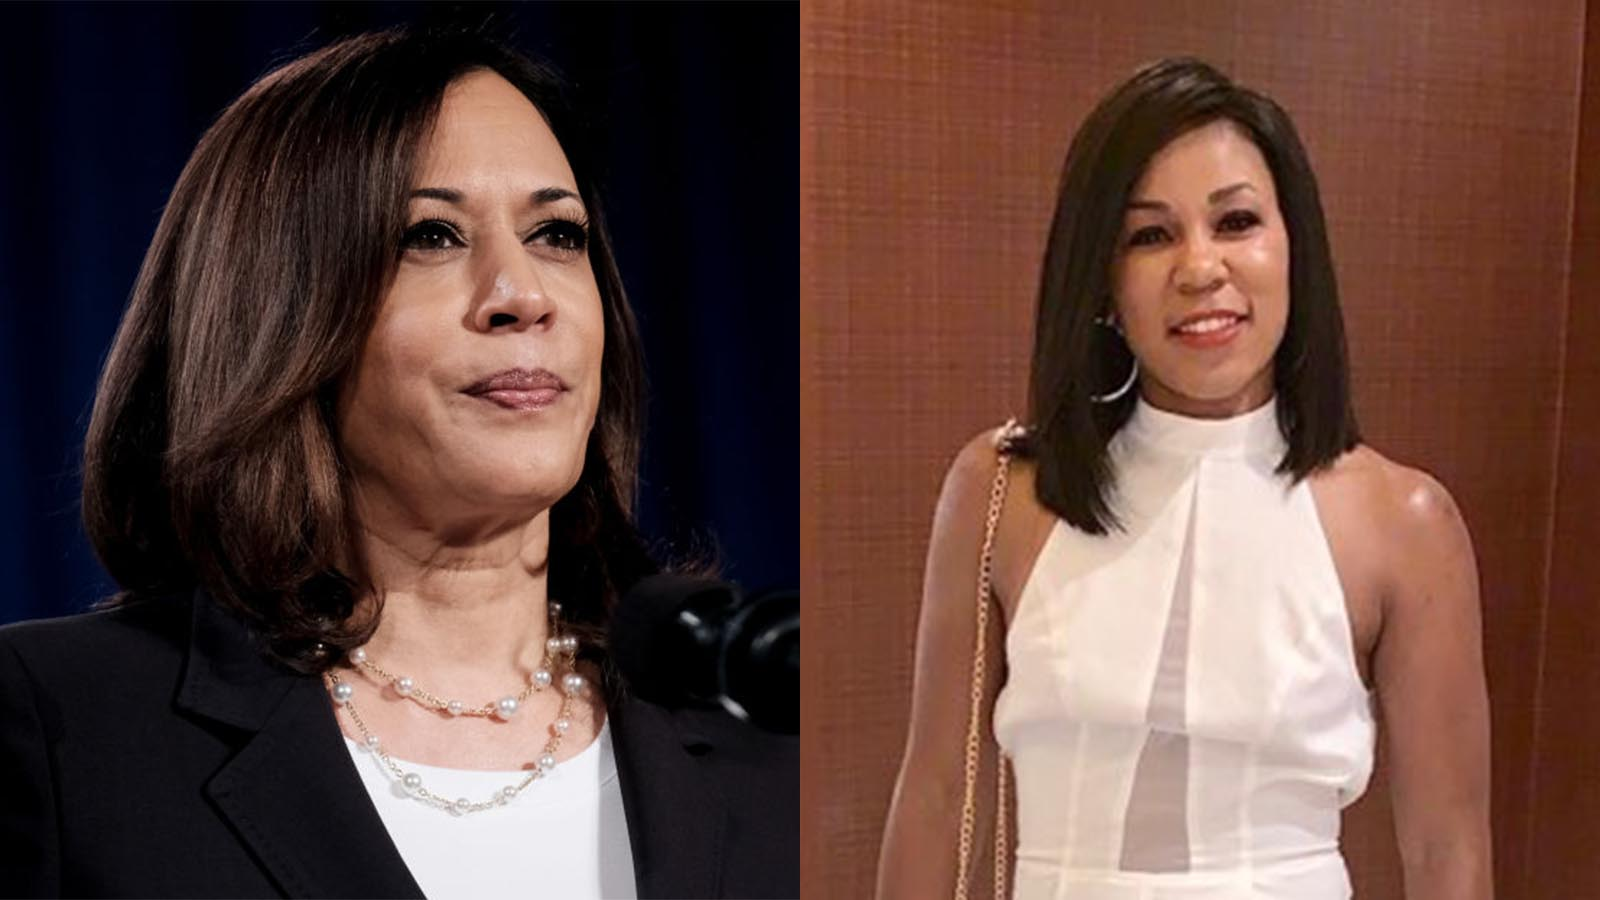 Democratic Vice Presidential nominee Sen. Kamala Harris (D-CA.) and 33-year-old Cynthia Anne, shown before undergoing surgery.(Getty/Courtesy)